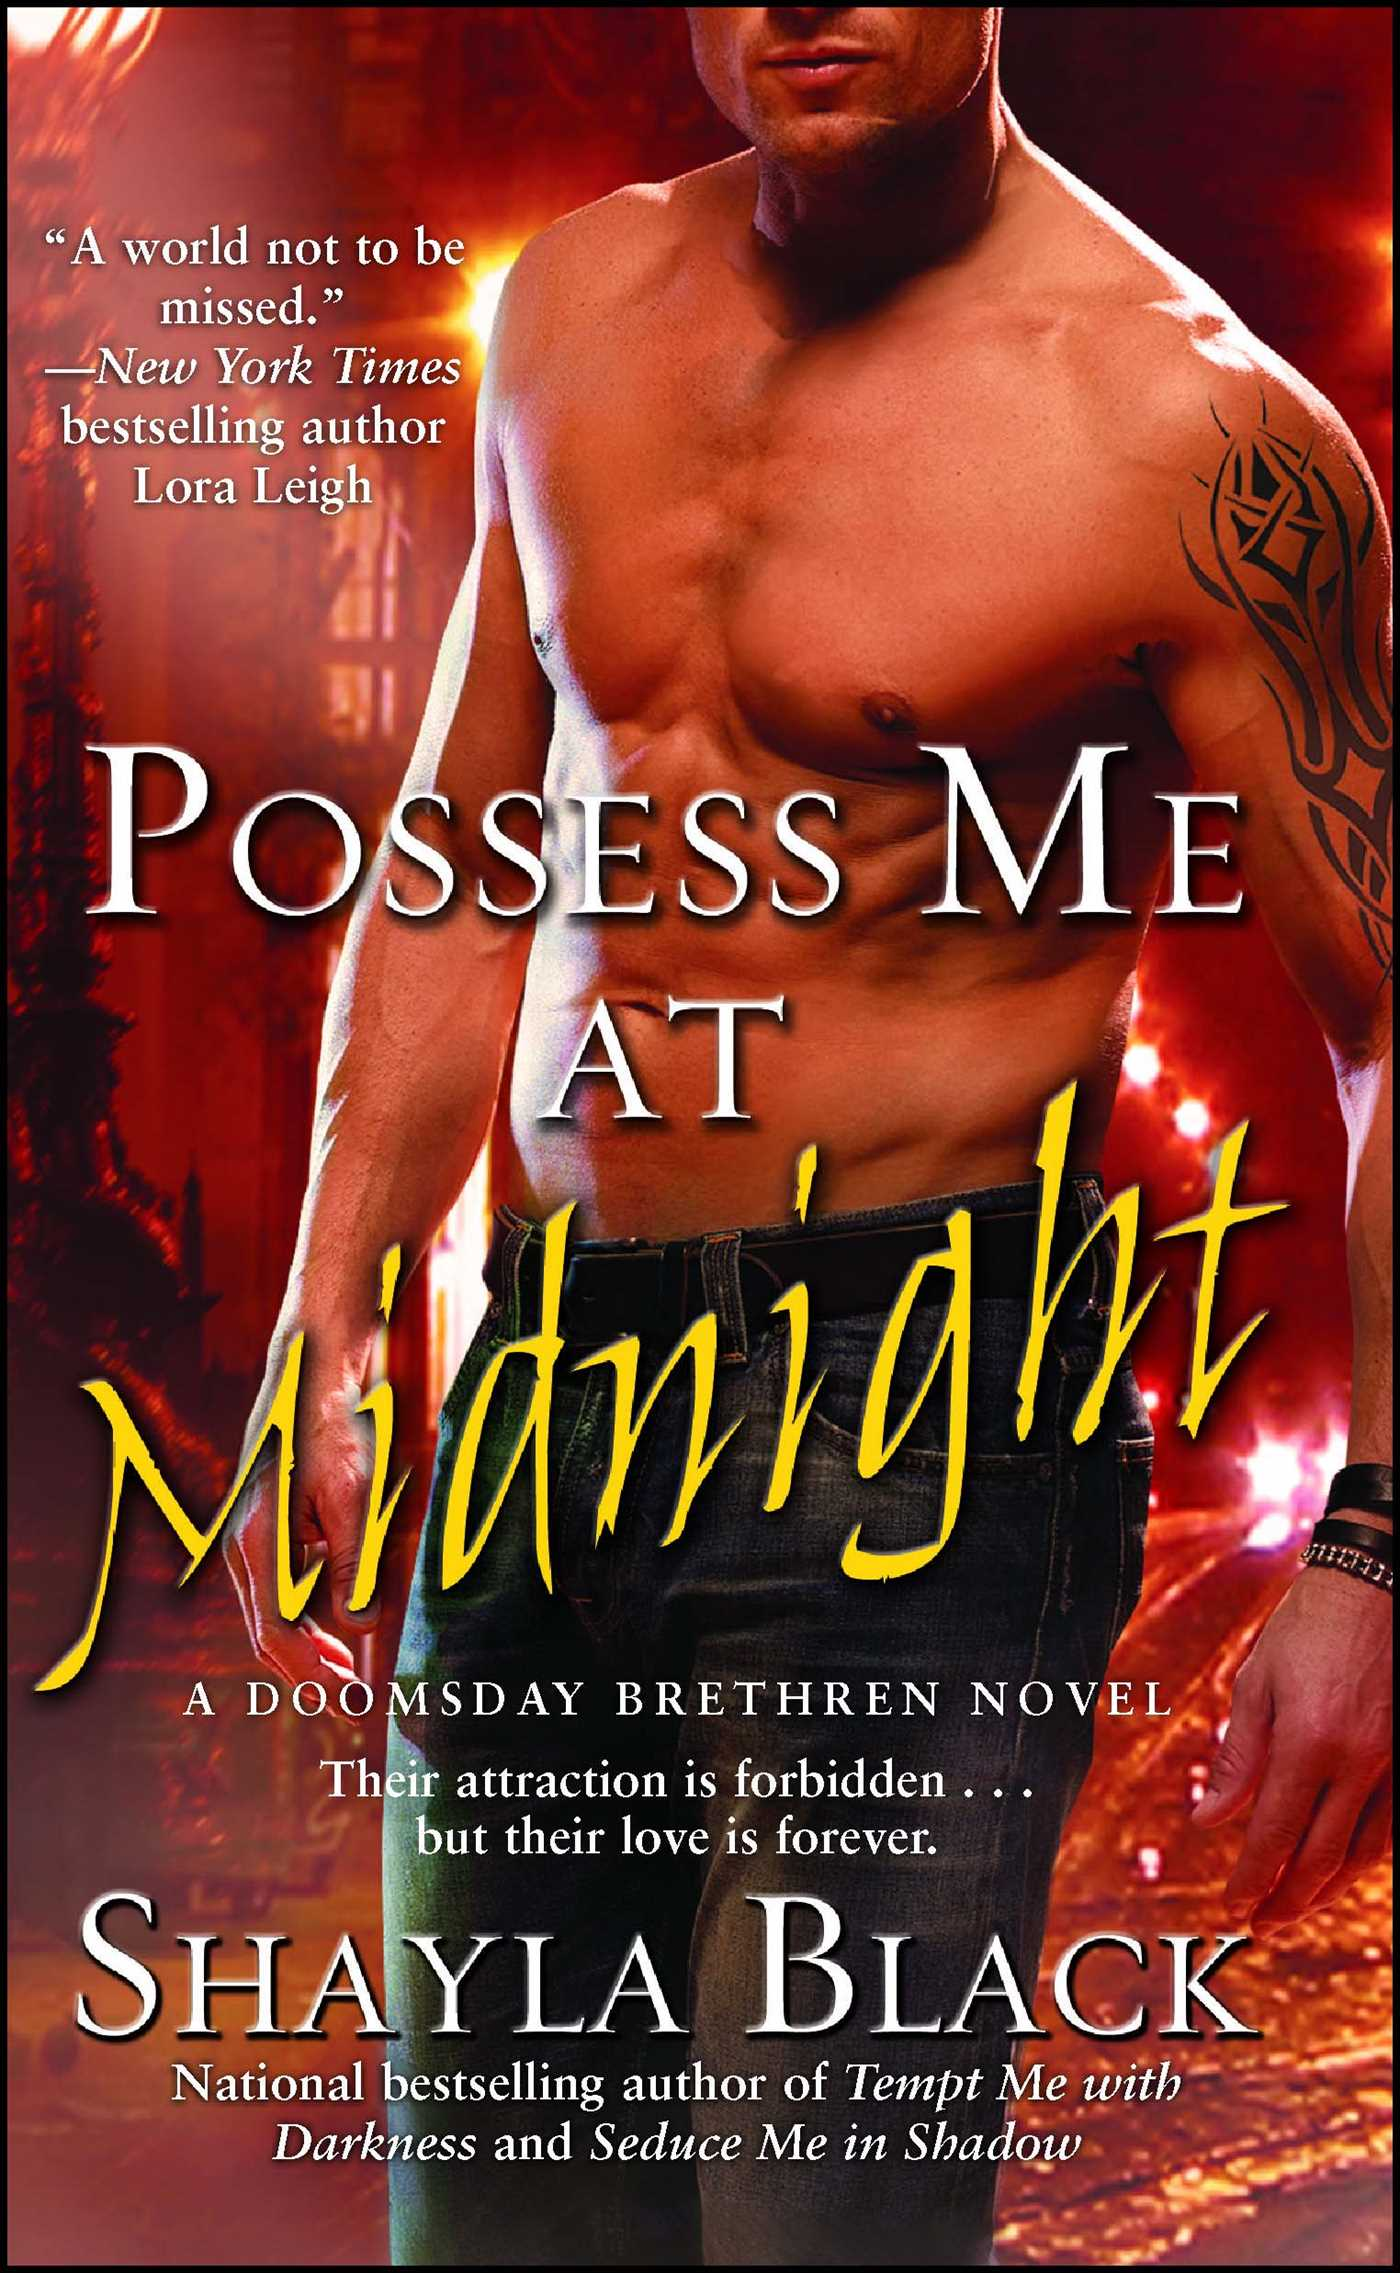 Possess-me-at-midnight-9781416578635_hr